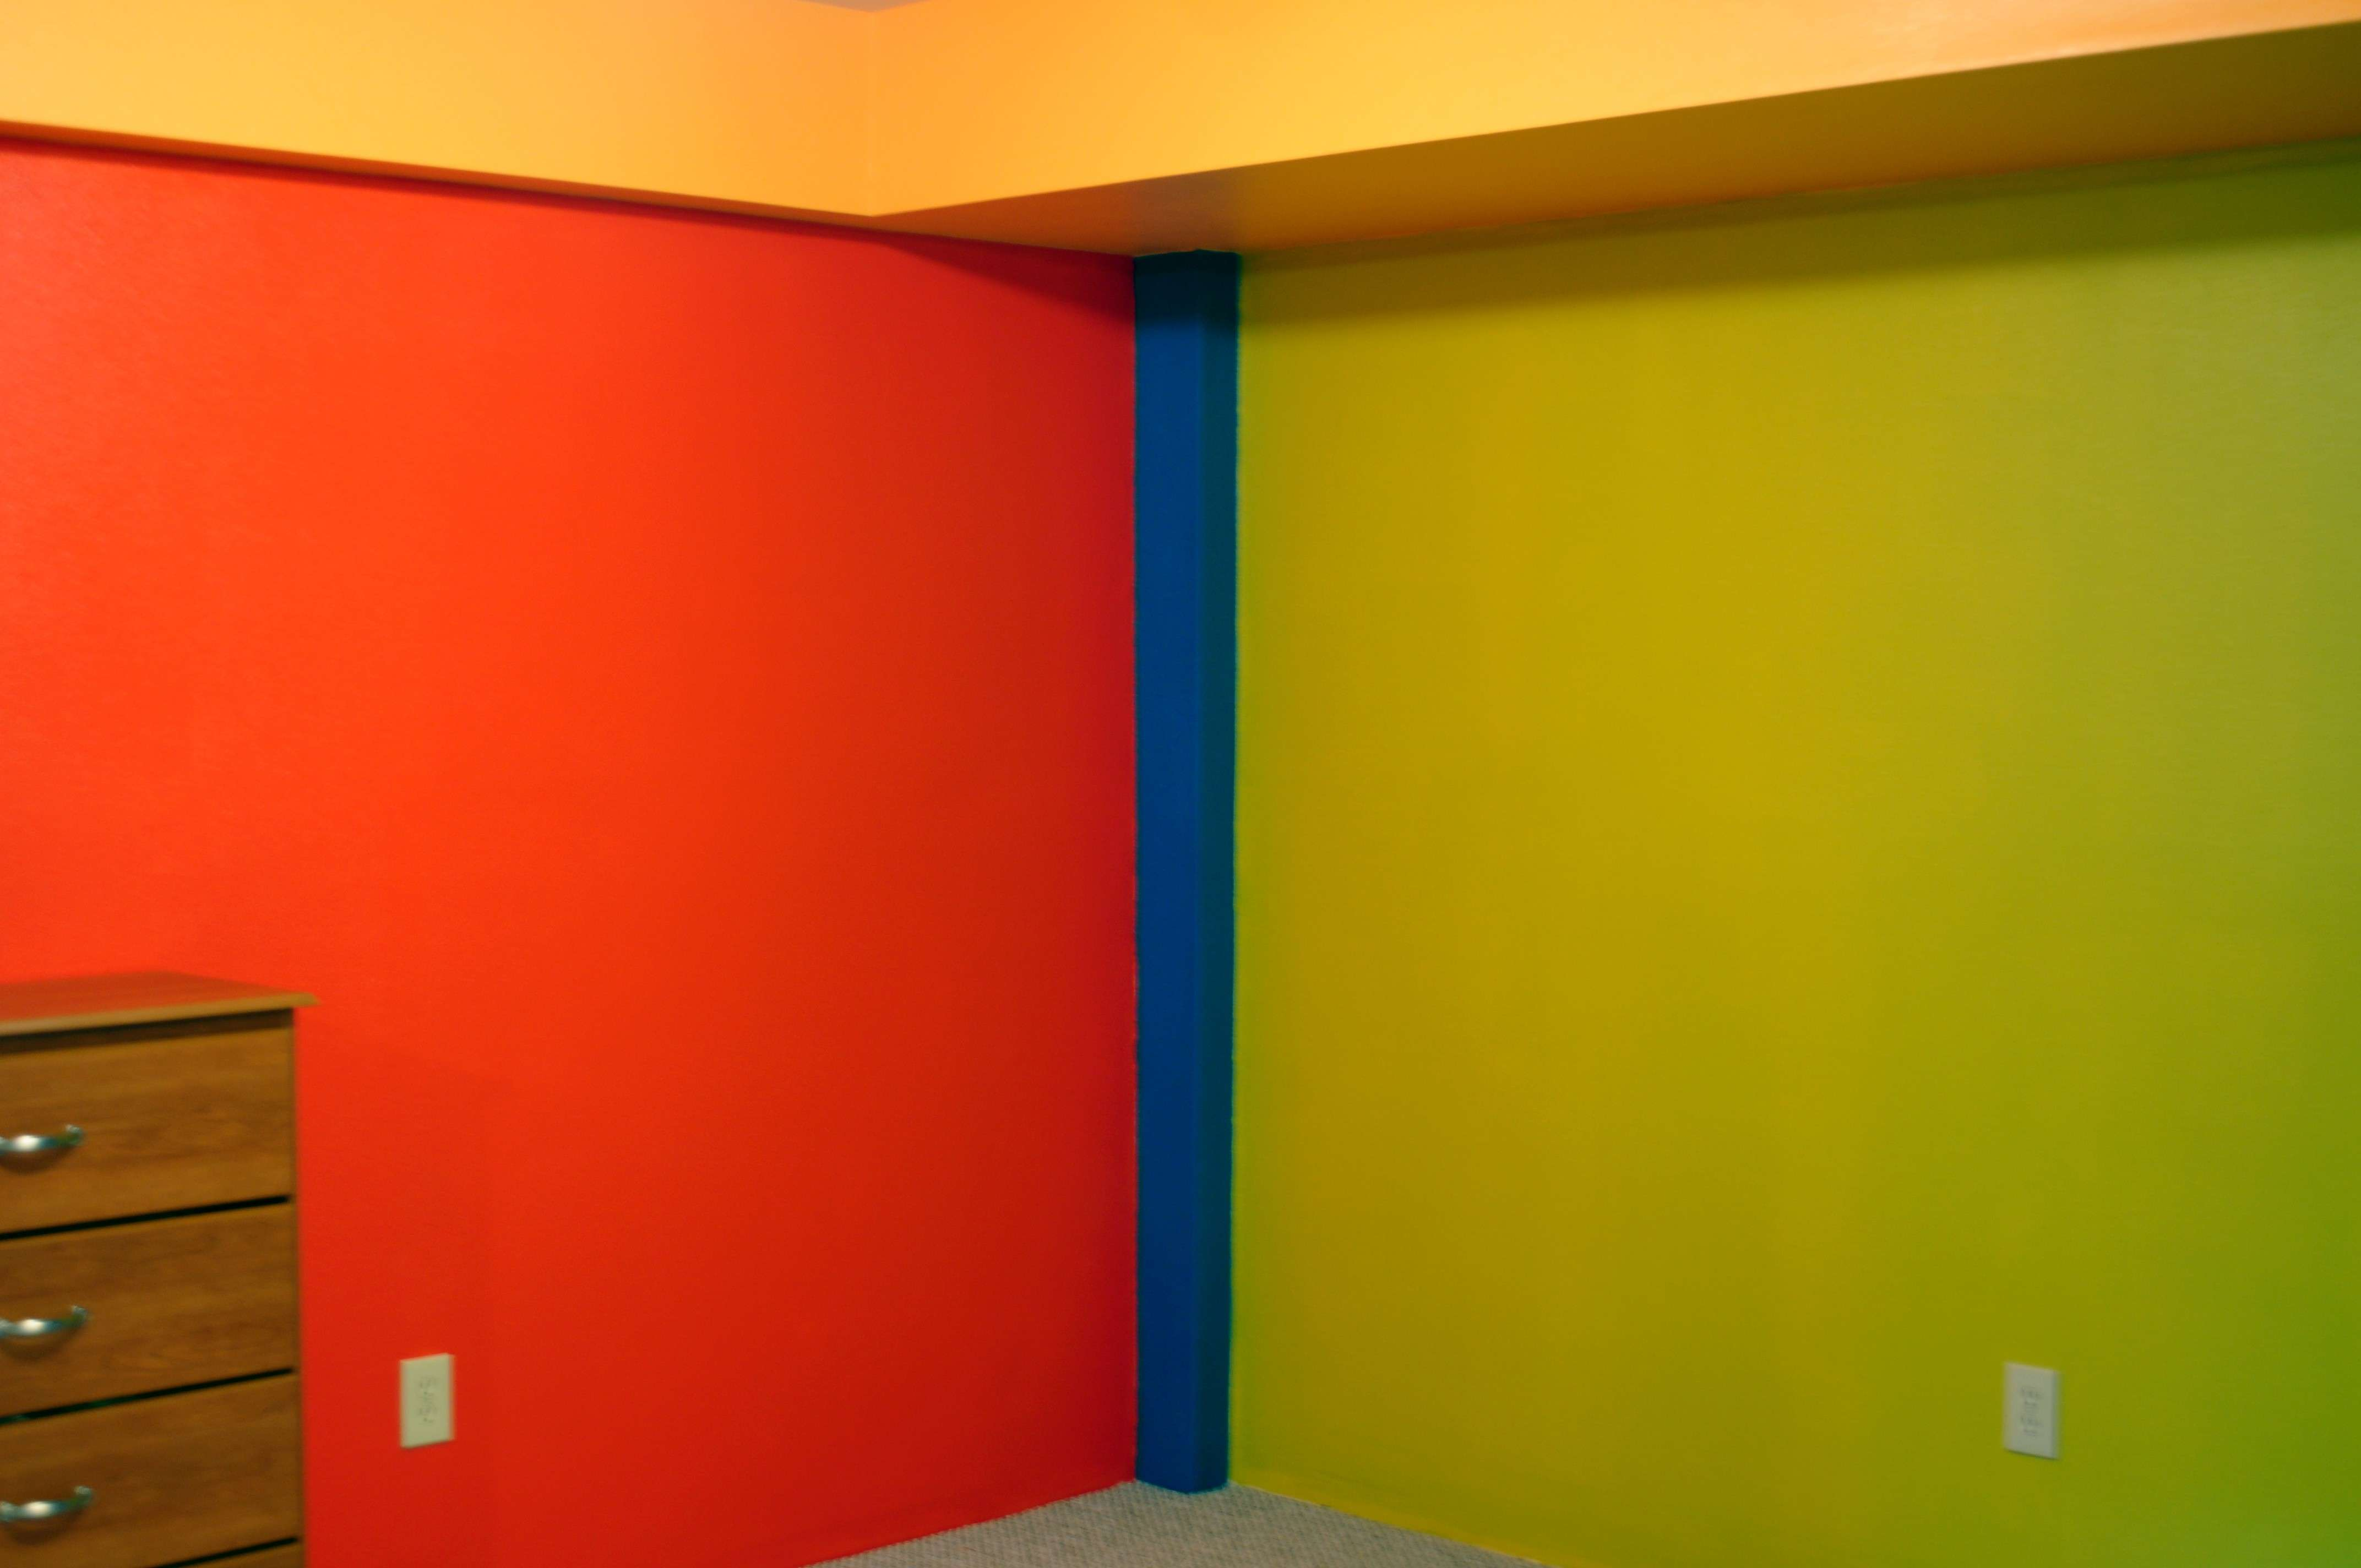 Room Yellow Wall Paint Right Side Red